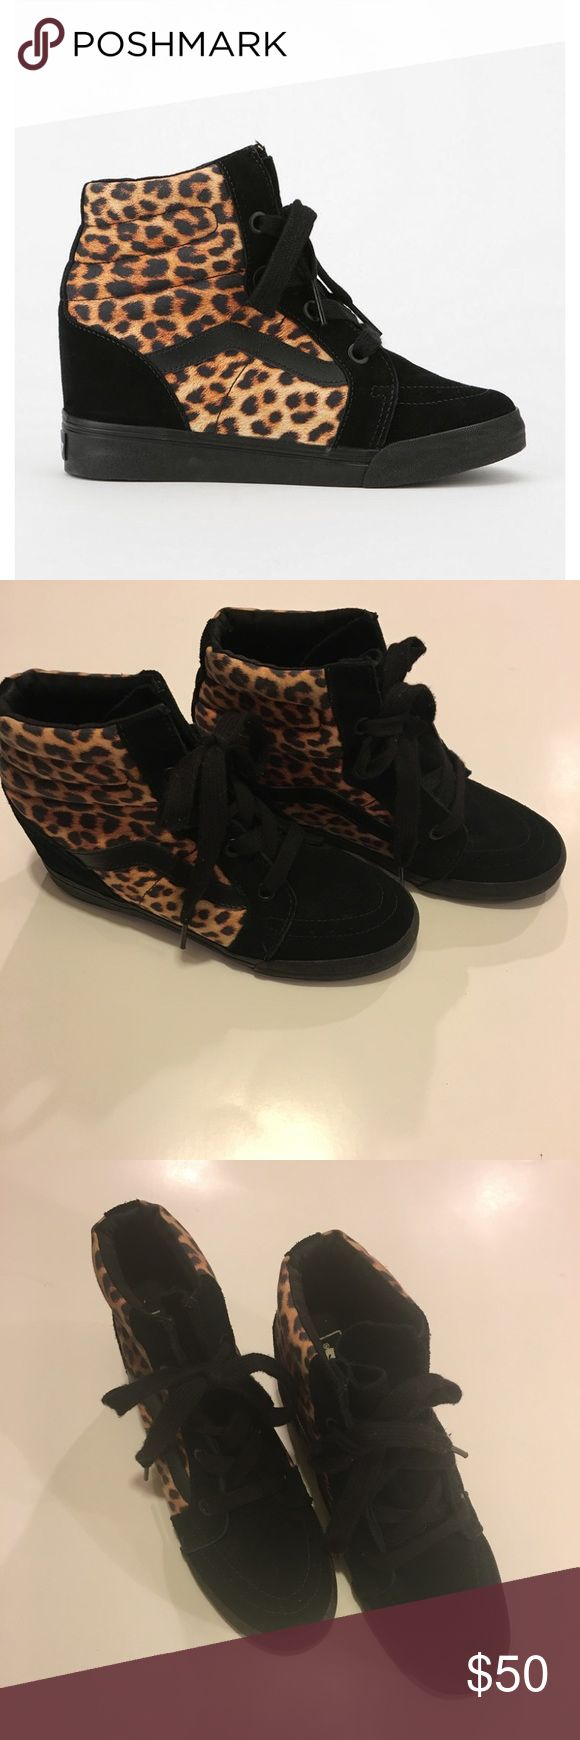 RARE Vans Sk8 Animal Print Hidden Wedges Super cute sz 9.5 cheetah wedge vans. These are in good condition and are such a unique shoe. Completely sold out and pretty hard to find this style.  Would be great paired with skinny jeans. Vans Shoes Sneakers